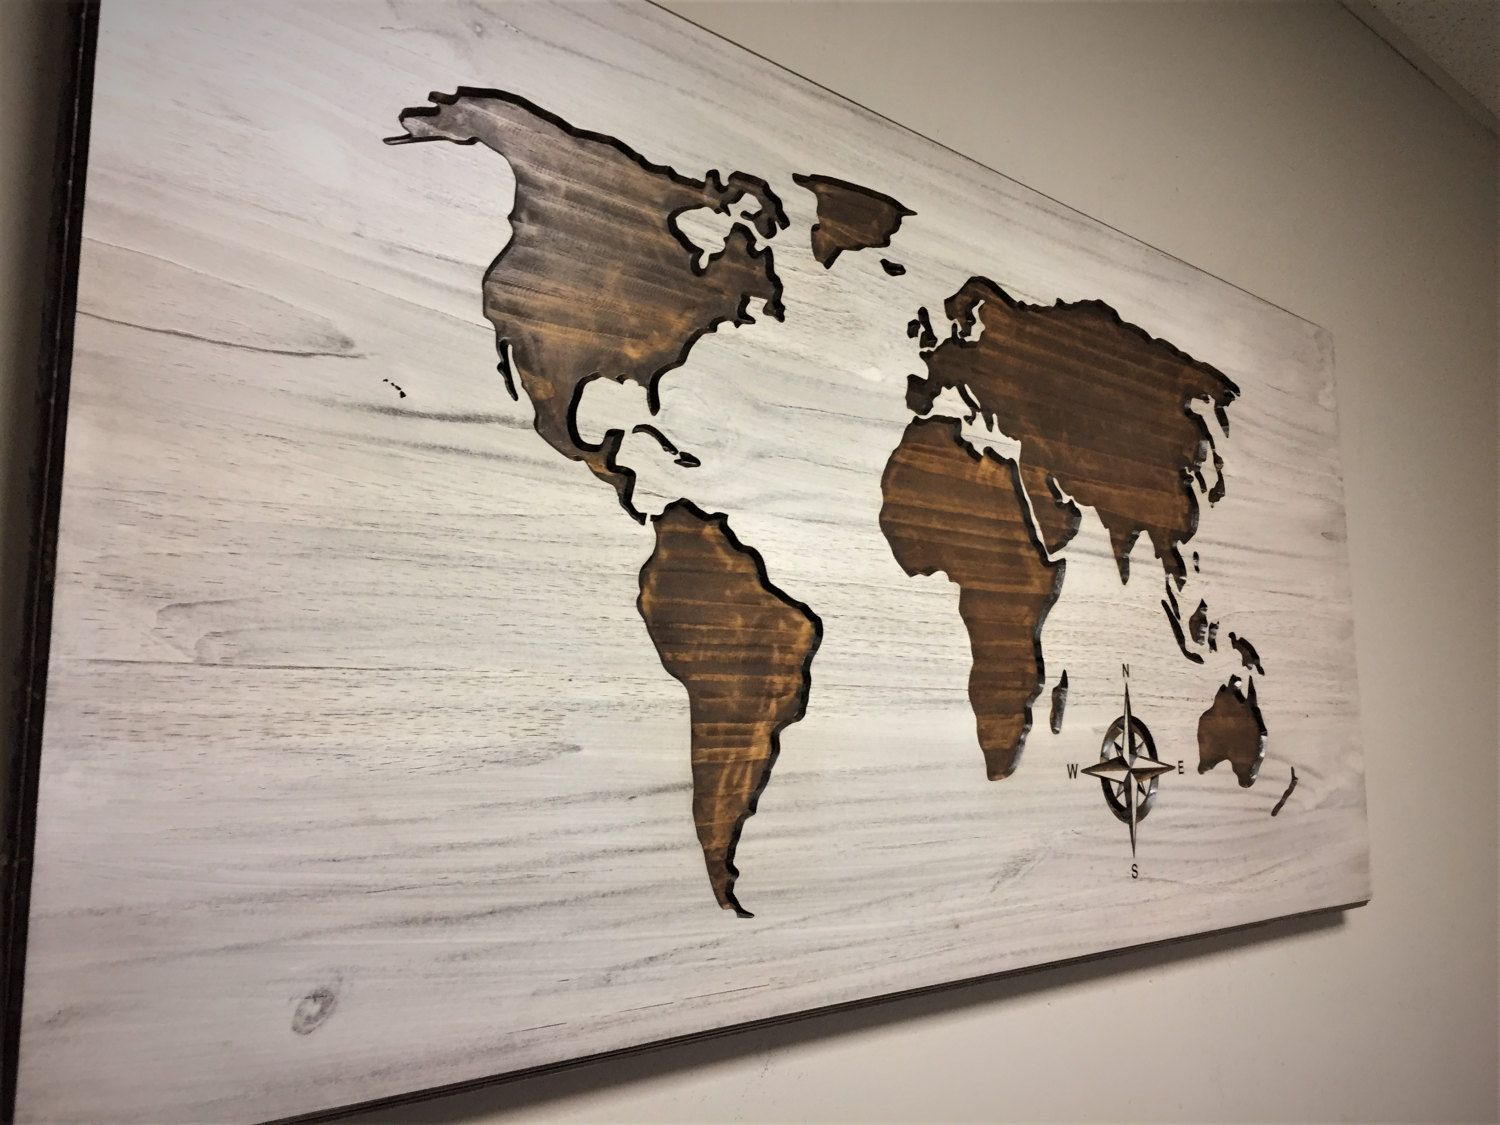 World map home decor carved wood wall art stained wooden map by world map home decor carved wood wall art stained wooden map by howdyowl on gumiabroncs Image collections